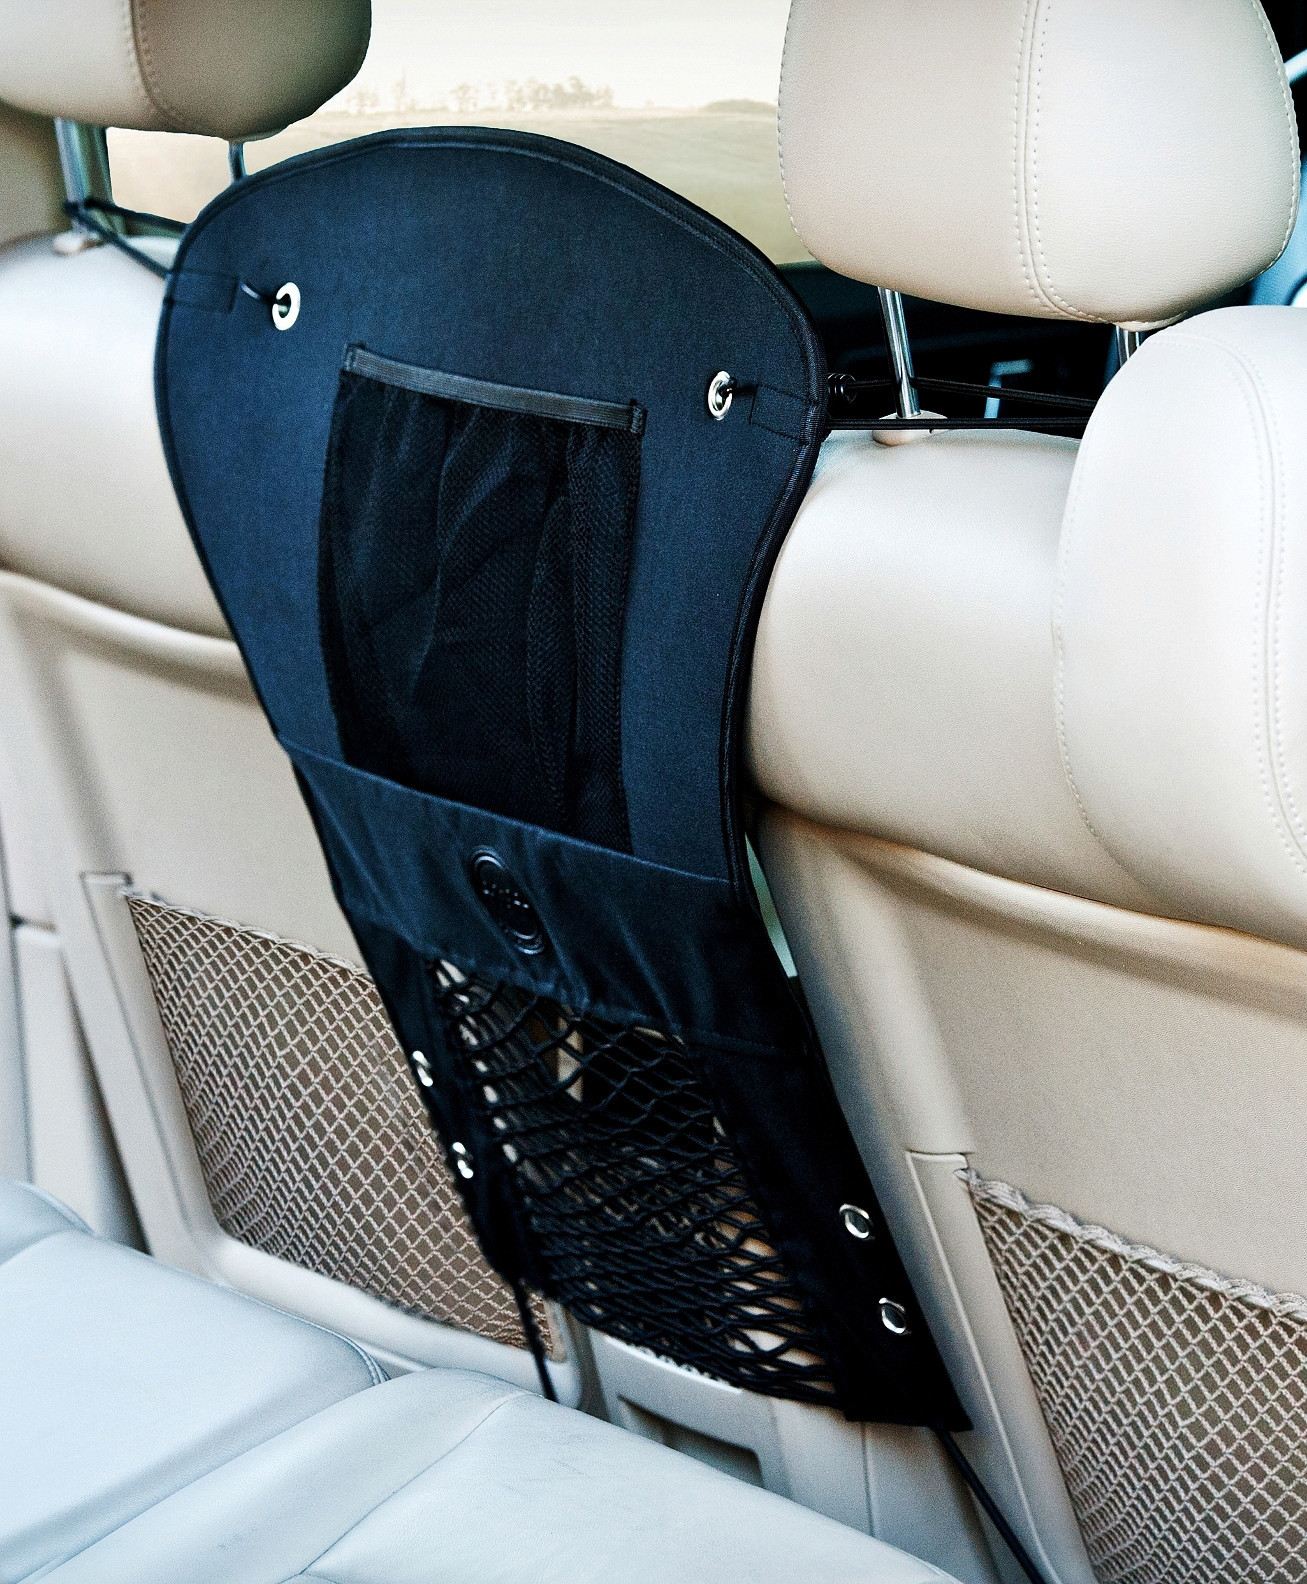 Dogged Restraint - K&H Car Travel Safety Barrier attaches via elastic bungee cords that hook around